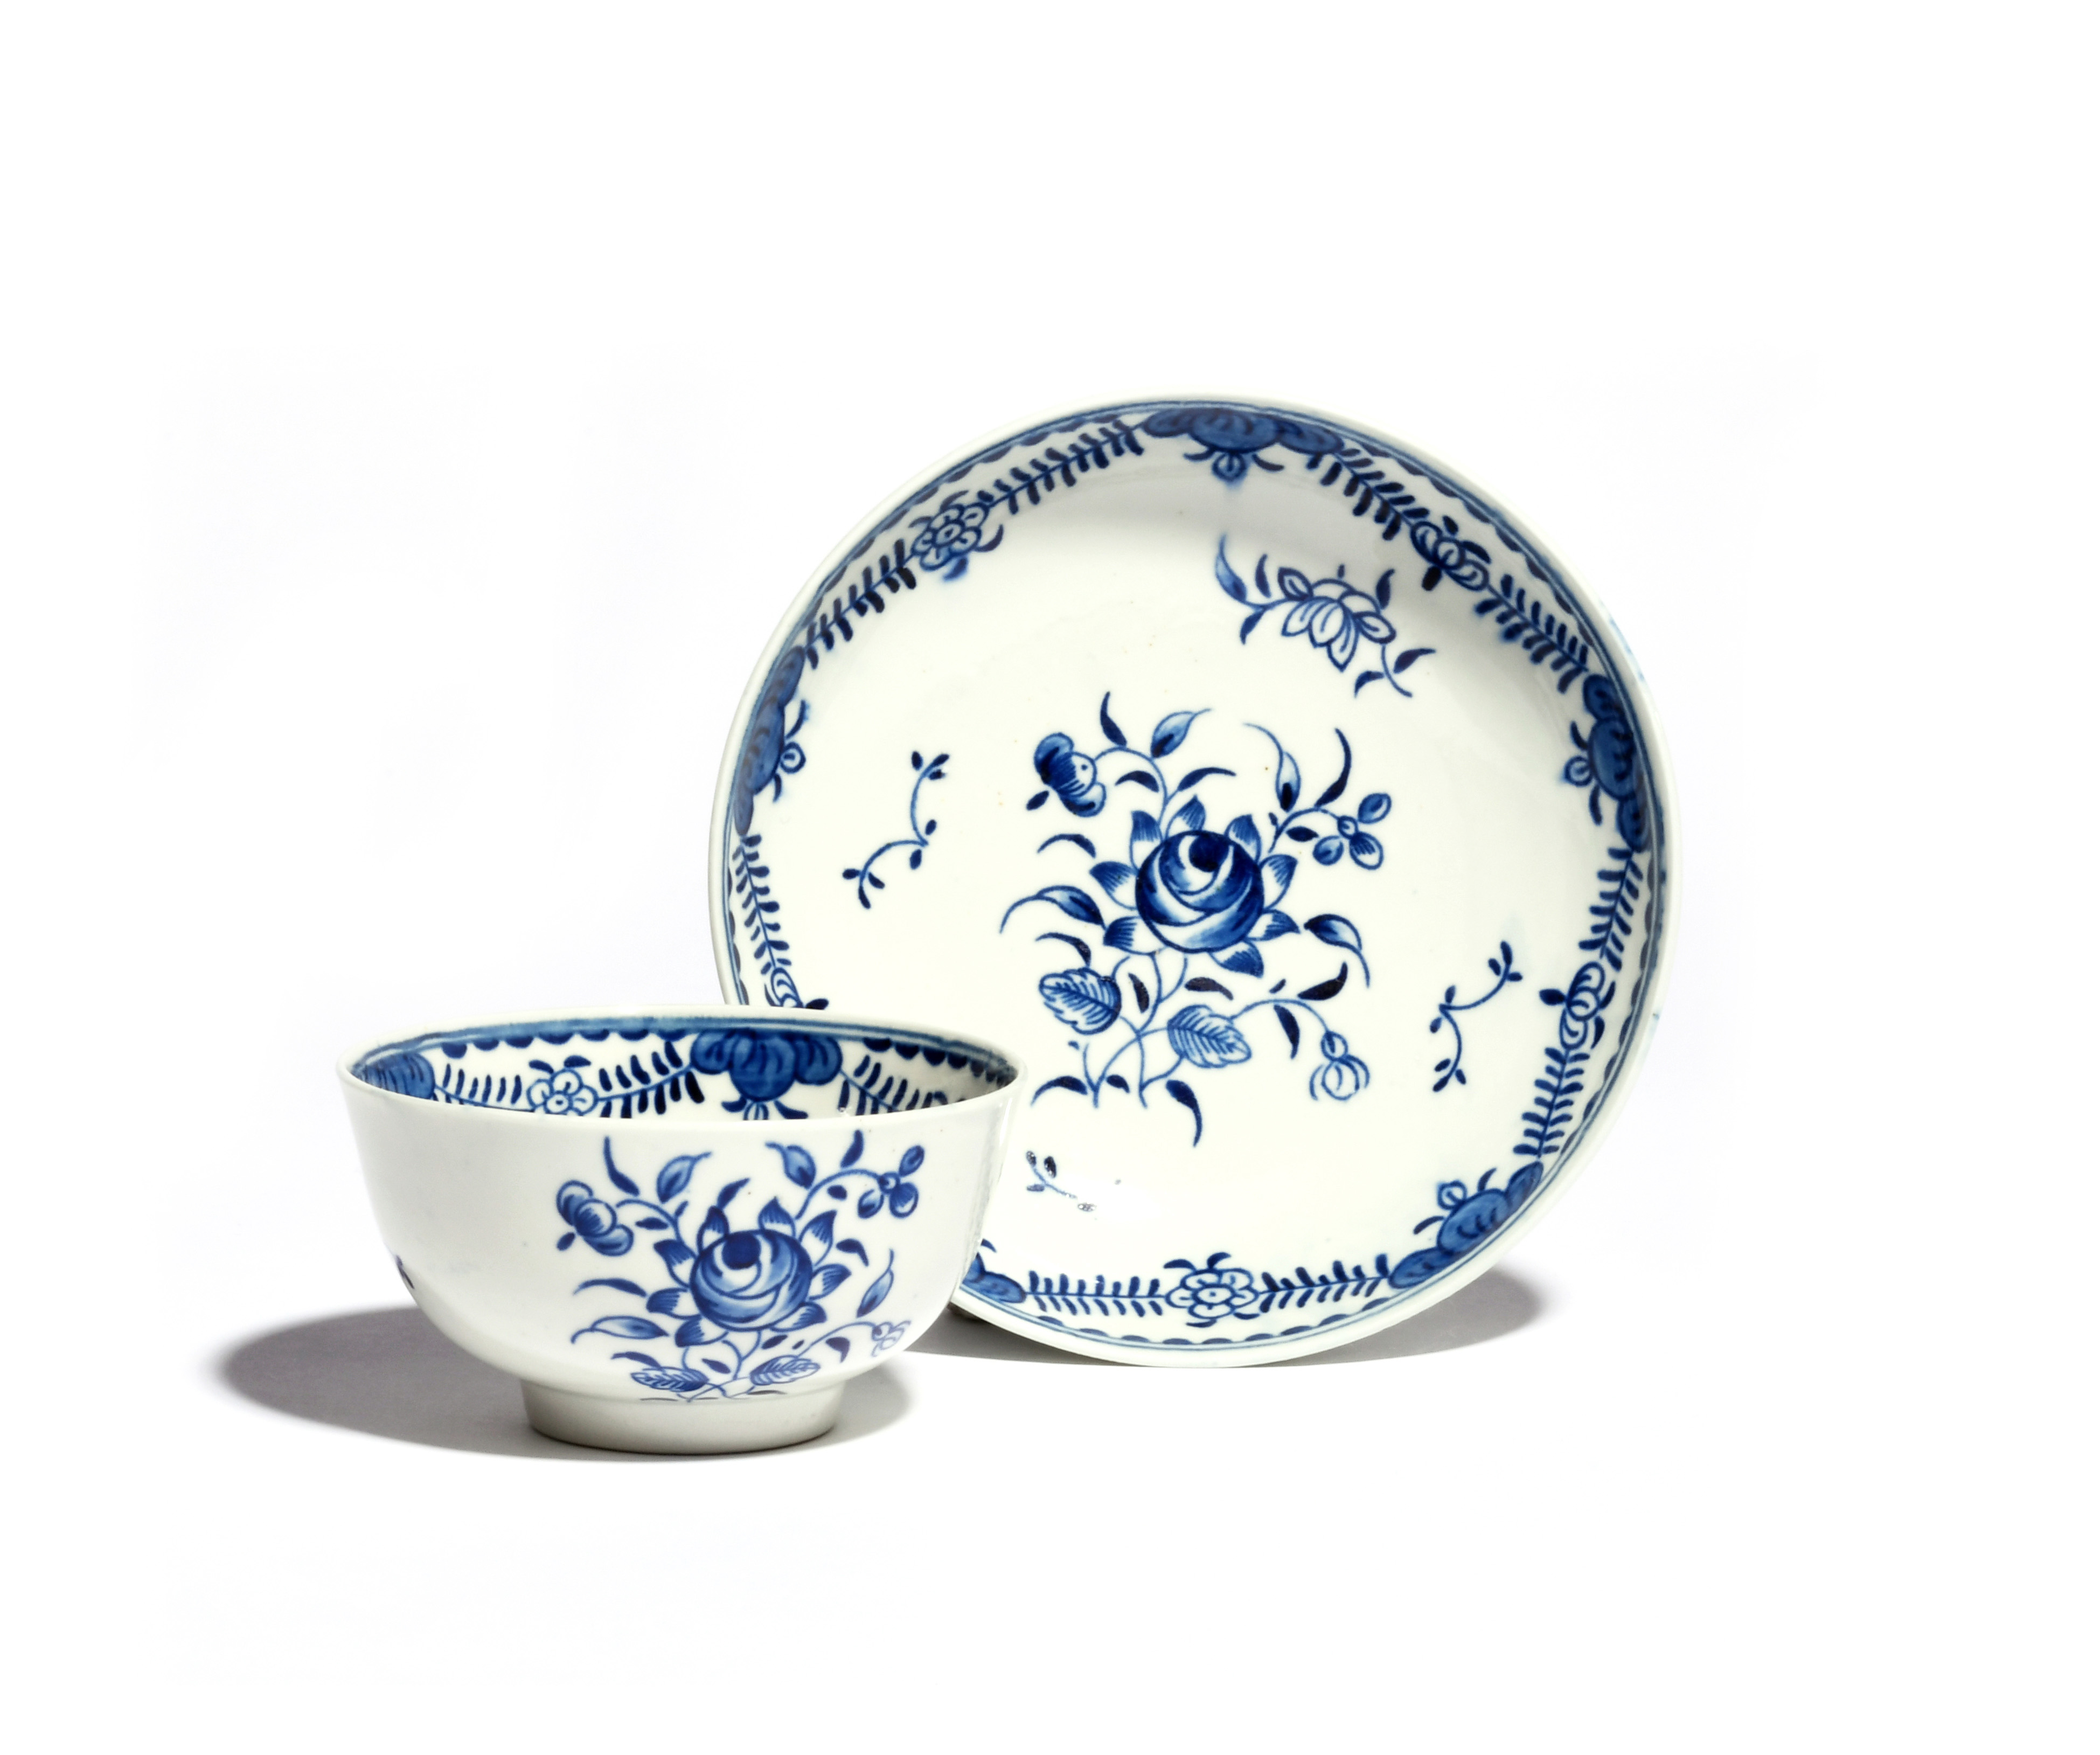 A rare Worcester blue and white teabowl and saucer c.1785, the generous forms painted with the